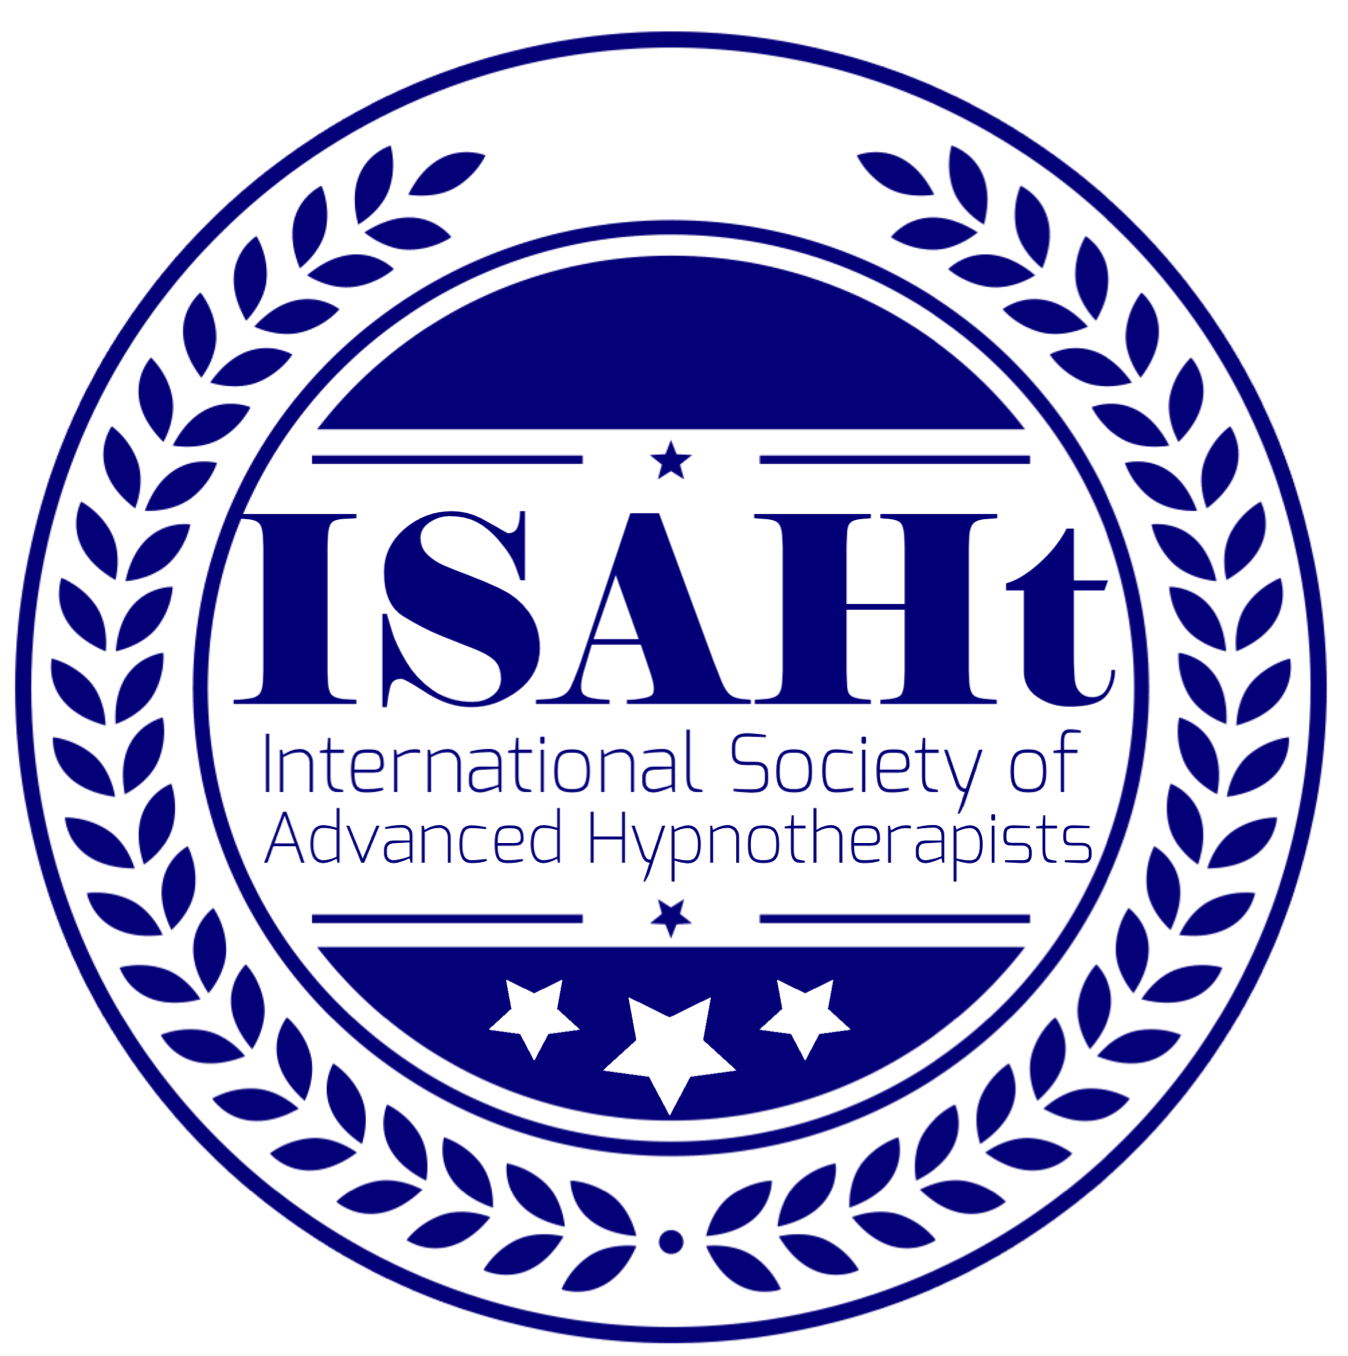 International Society of Advanced Hypnotherapists